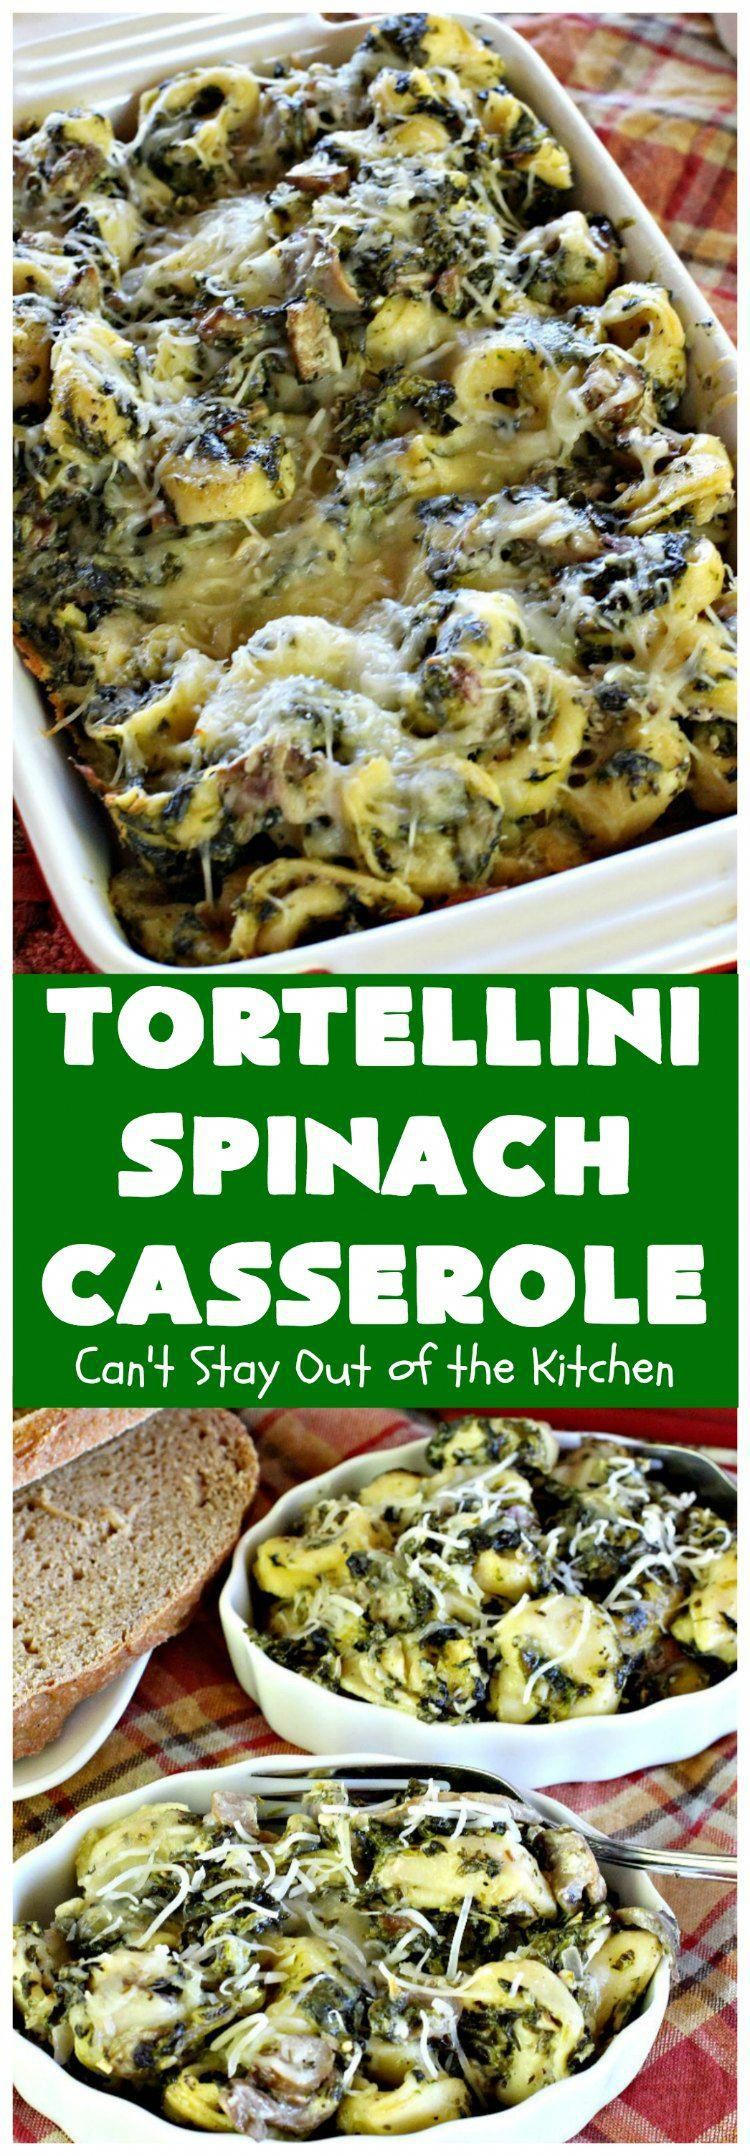 Tortellini Spinach Casserole | Can't Stay Out of the Kitchen | this delicious entree is incredibly mouthwatering. It's filled with several kinds of & cheese It's terrific for as well as company.